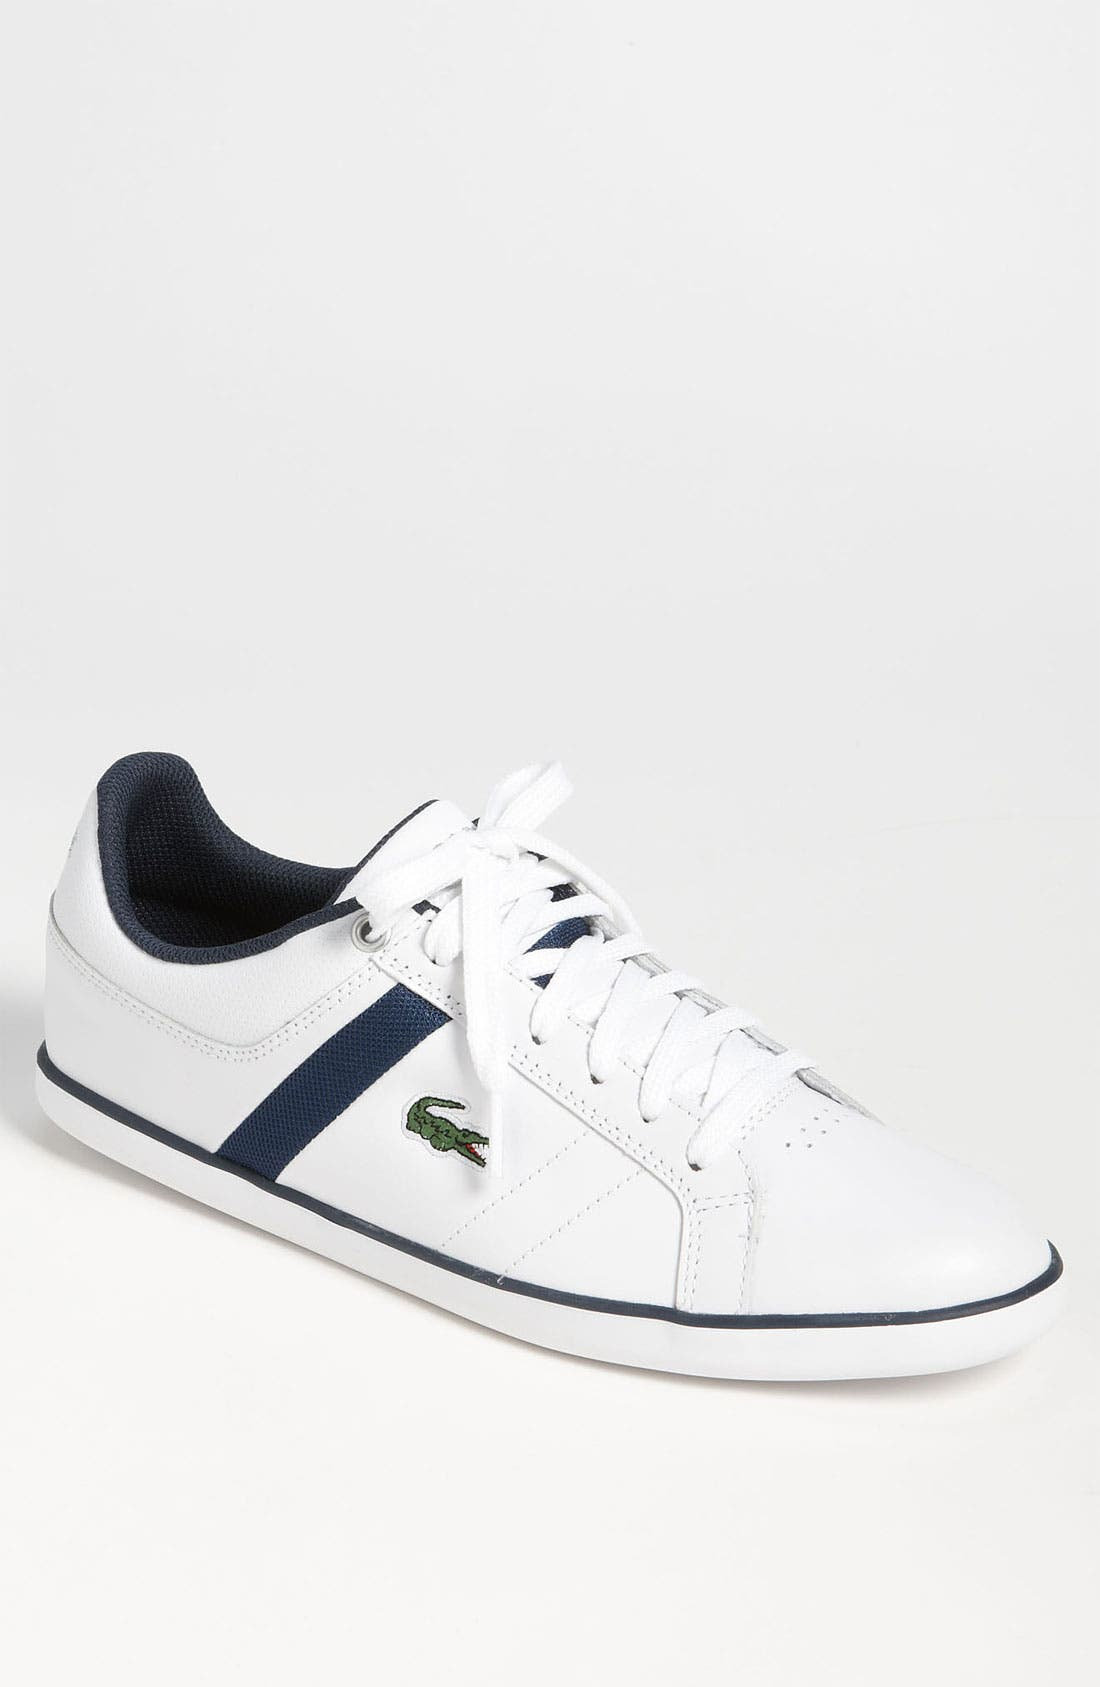 Alternate Image 1 Selected - Lacoste 'Evershot CR' Sneaker